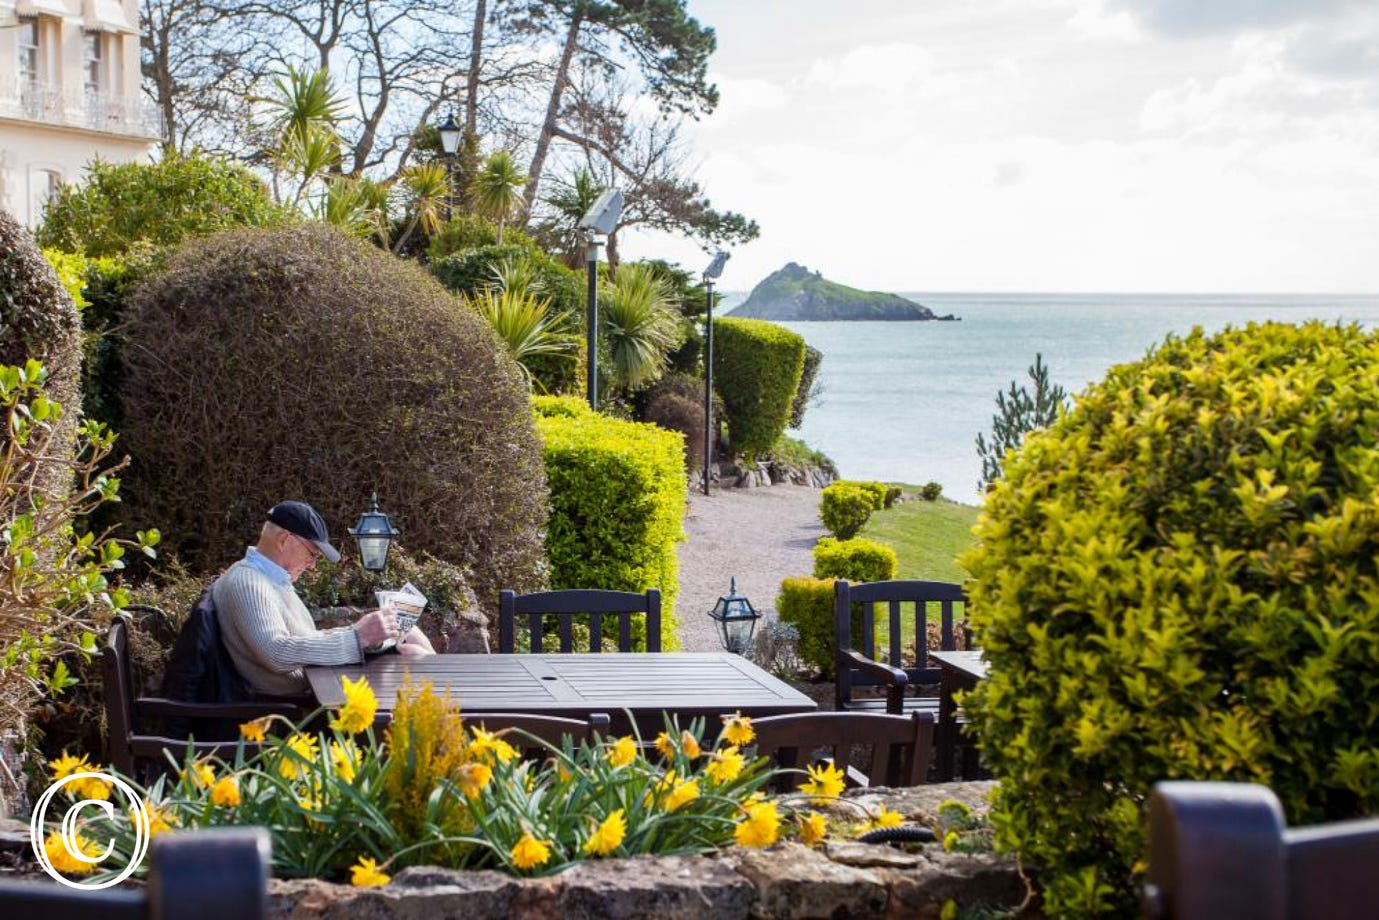 Enjoy the Gardens at Hesketh Crescent, Looking out over Meadfoot Beach to Thatcher's Rock and Beyond